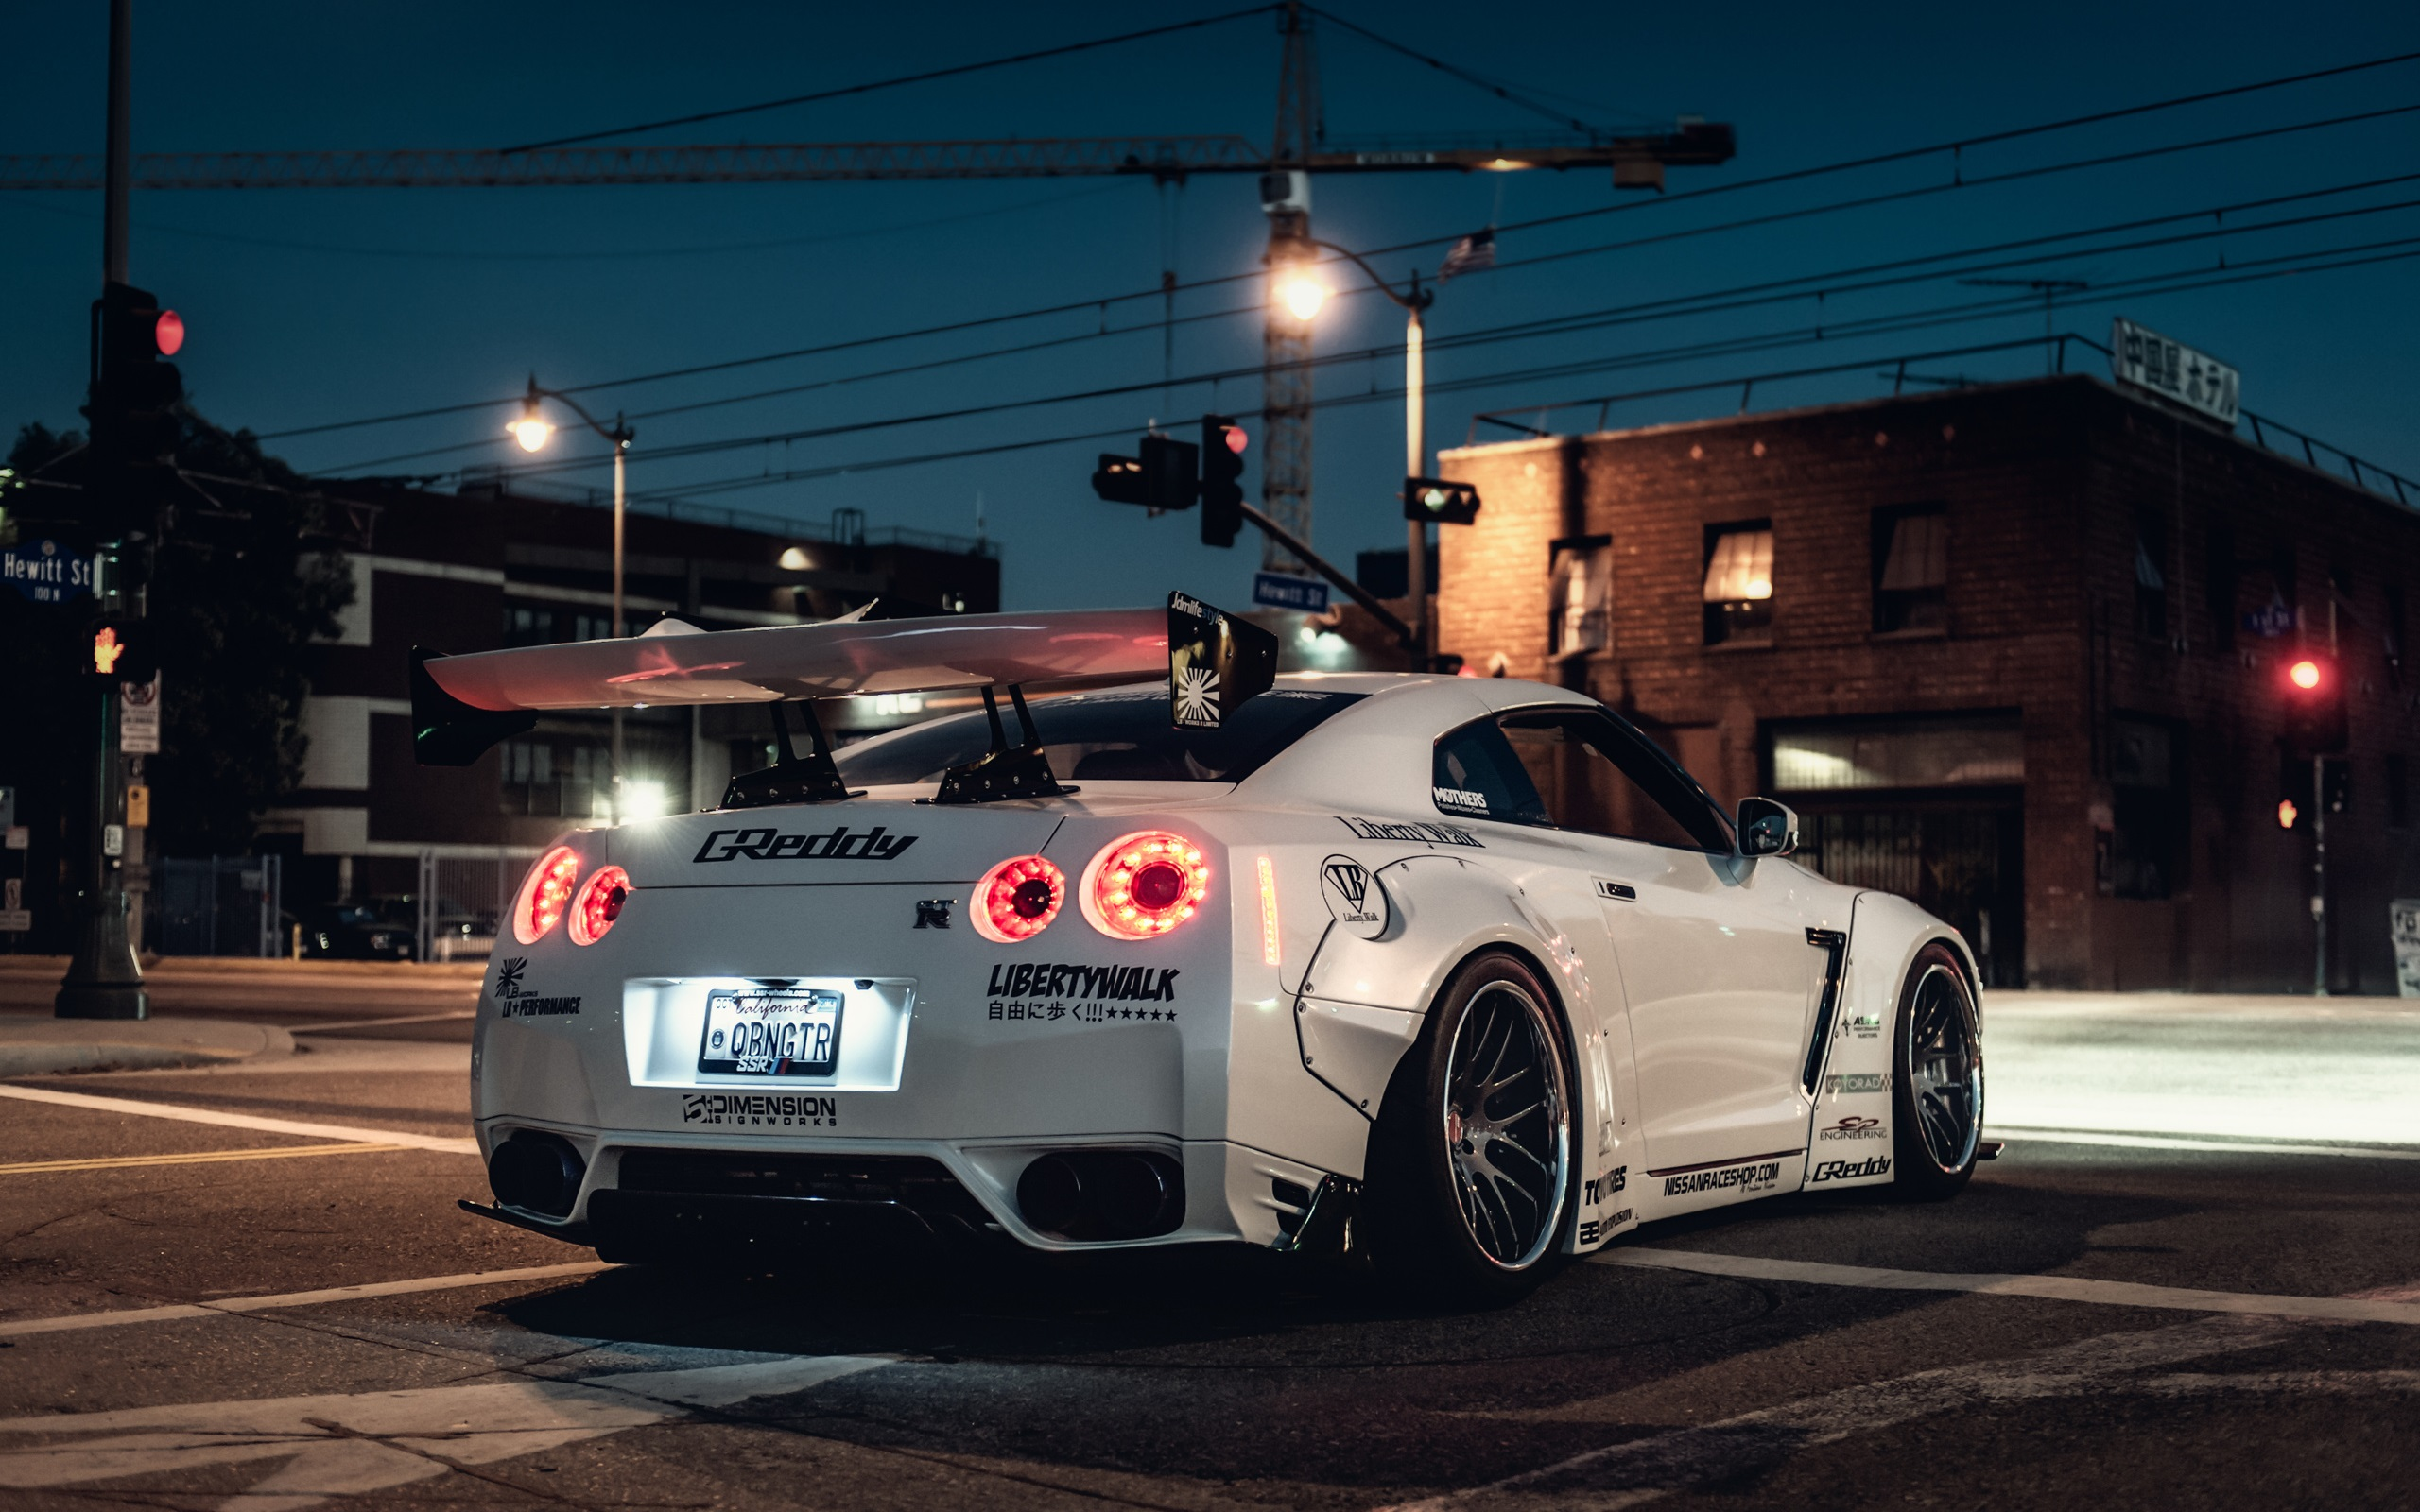 Nissan Gt R White Supercar Back View 750x1334 Iphone 8 7 6 6s